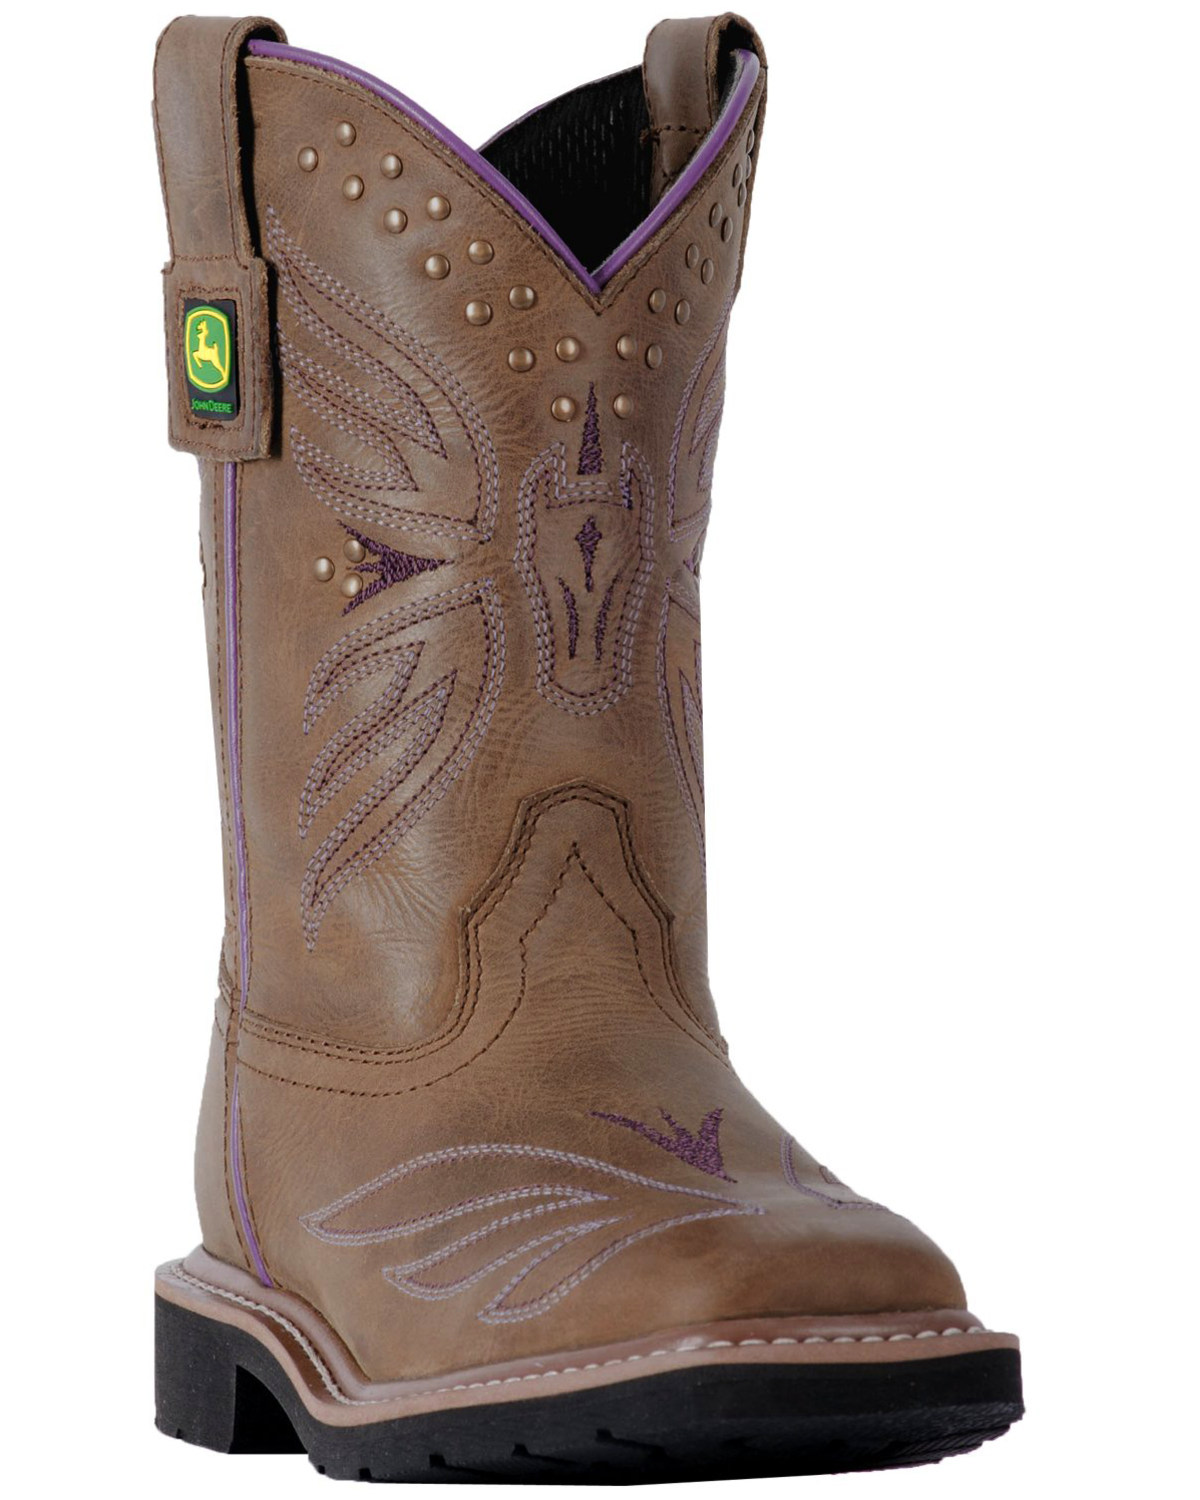 a84da4b06 Zoomed Image John Deere Youth Girls' Johnny Popper Western Boots - Square  Toe, Brown, hi